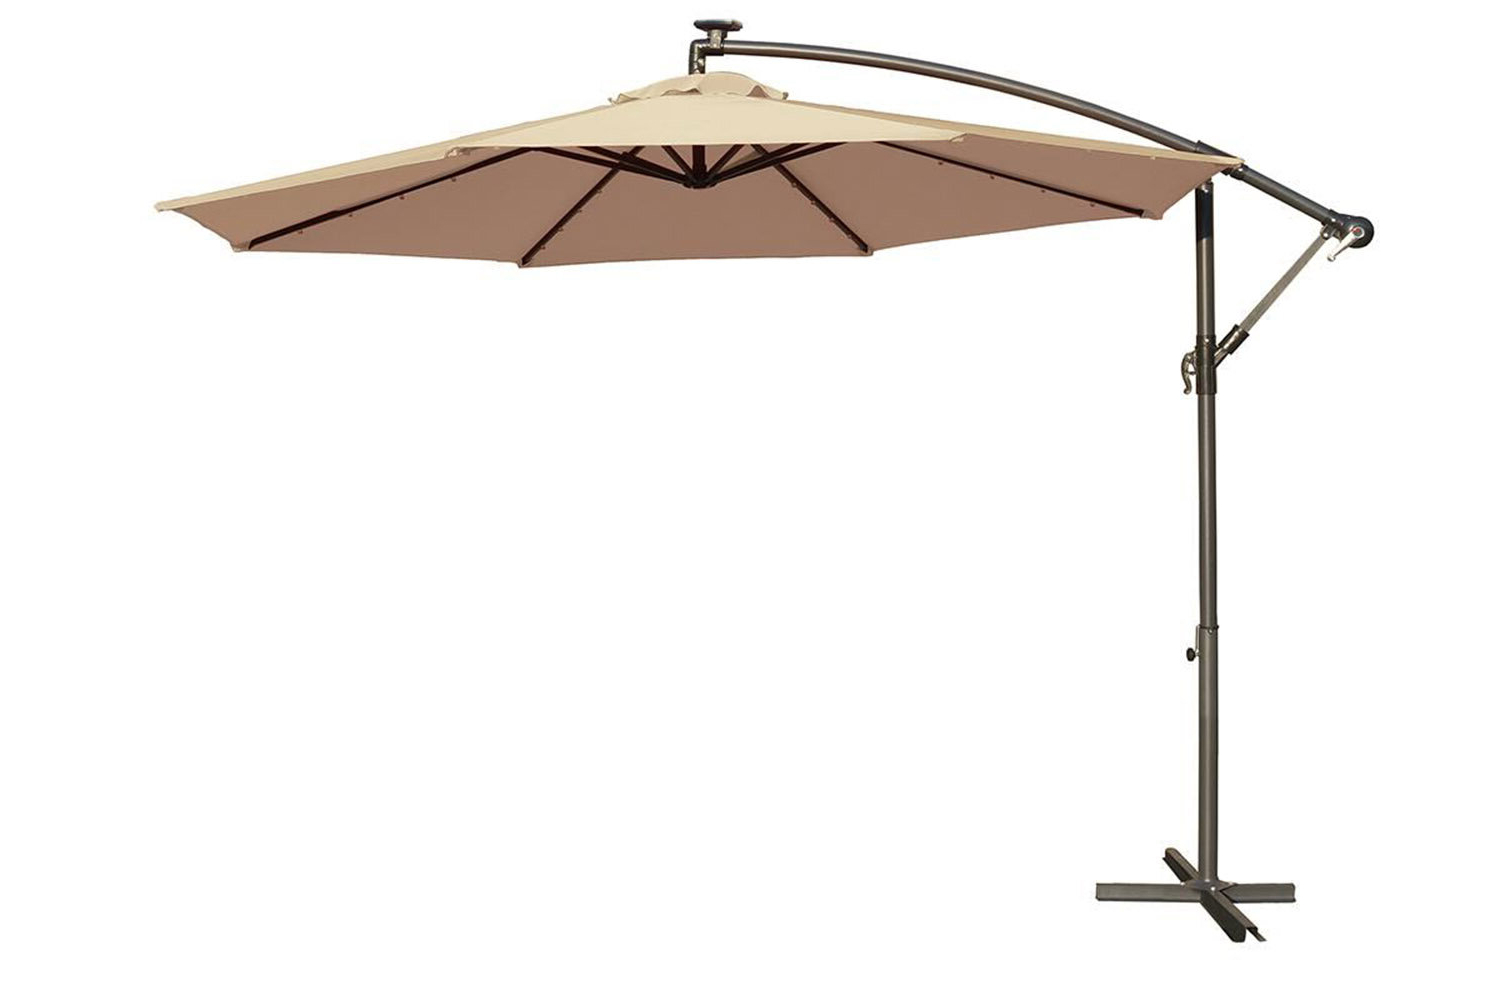 Newest Dunwich 10' Cantilever Umbrella Pertaining To Tallulah Sunshade Hanging Outdoor Cantilever Umbrellas (Gallery 4 of 20)